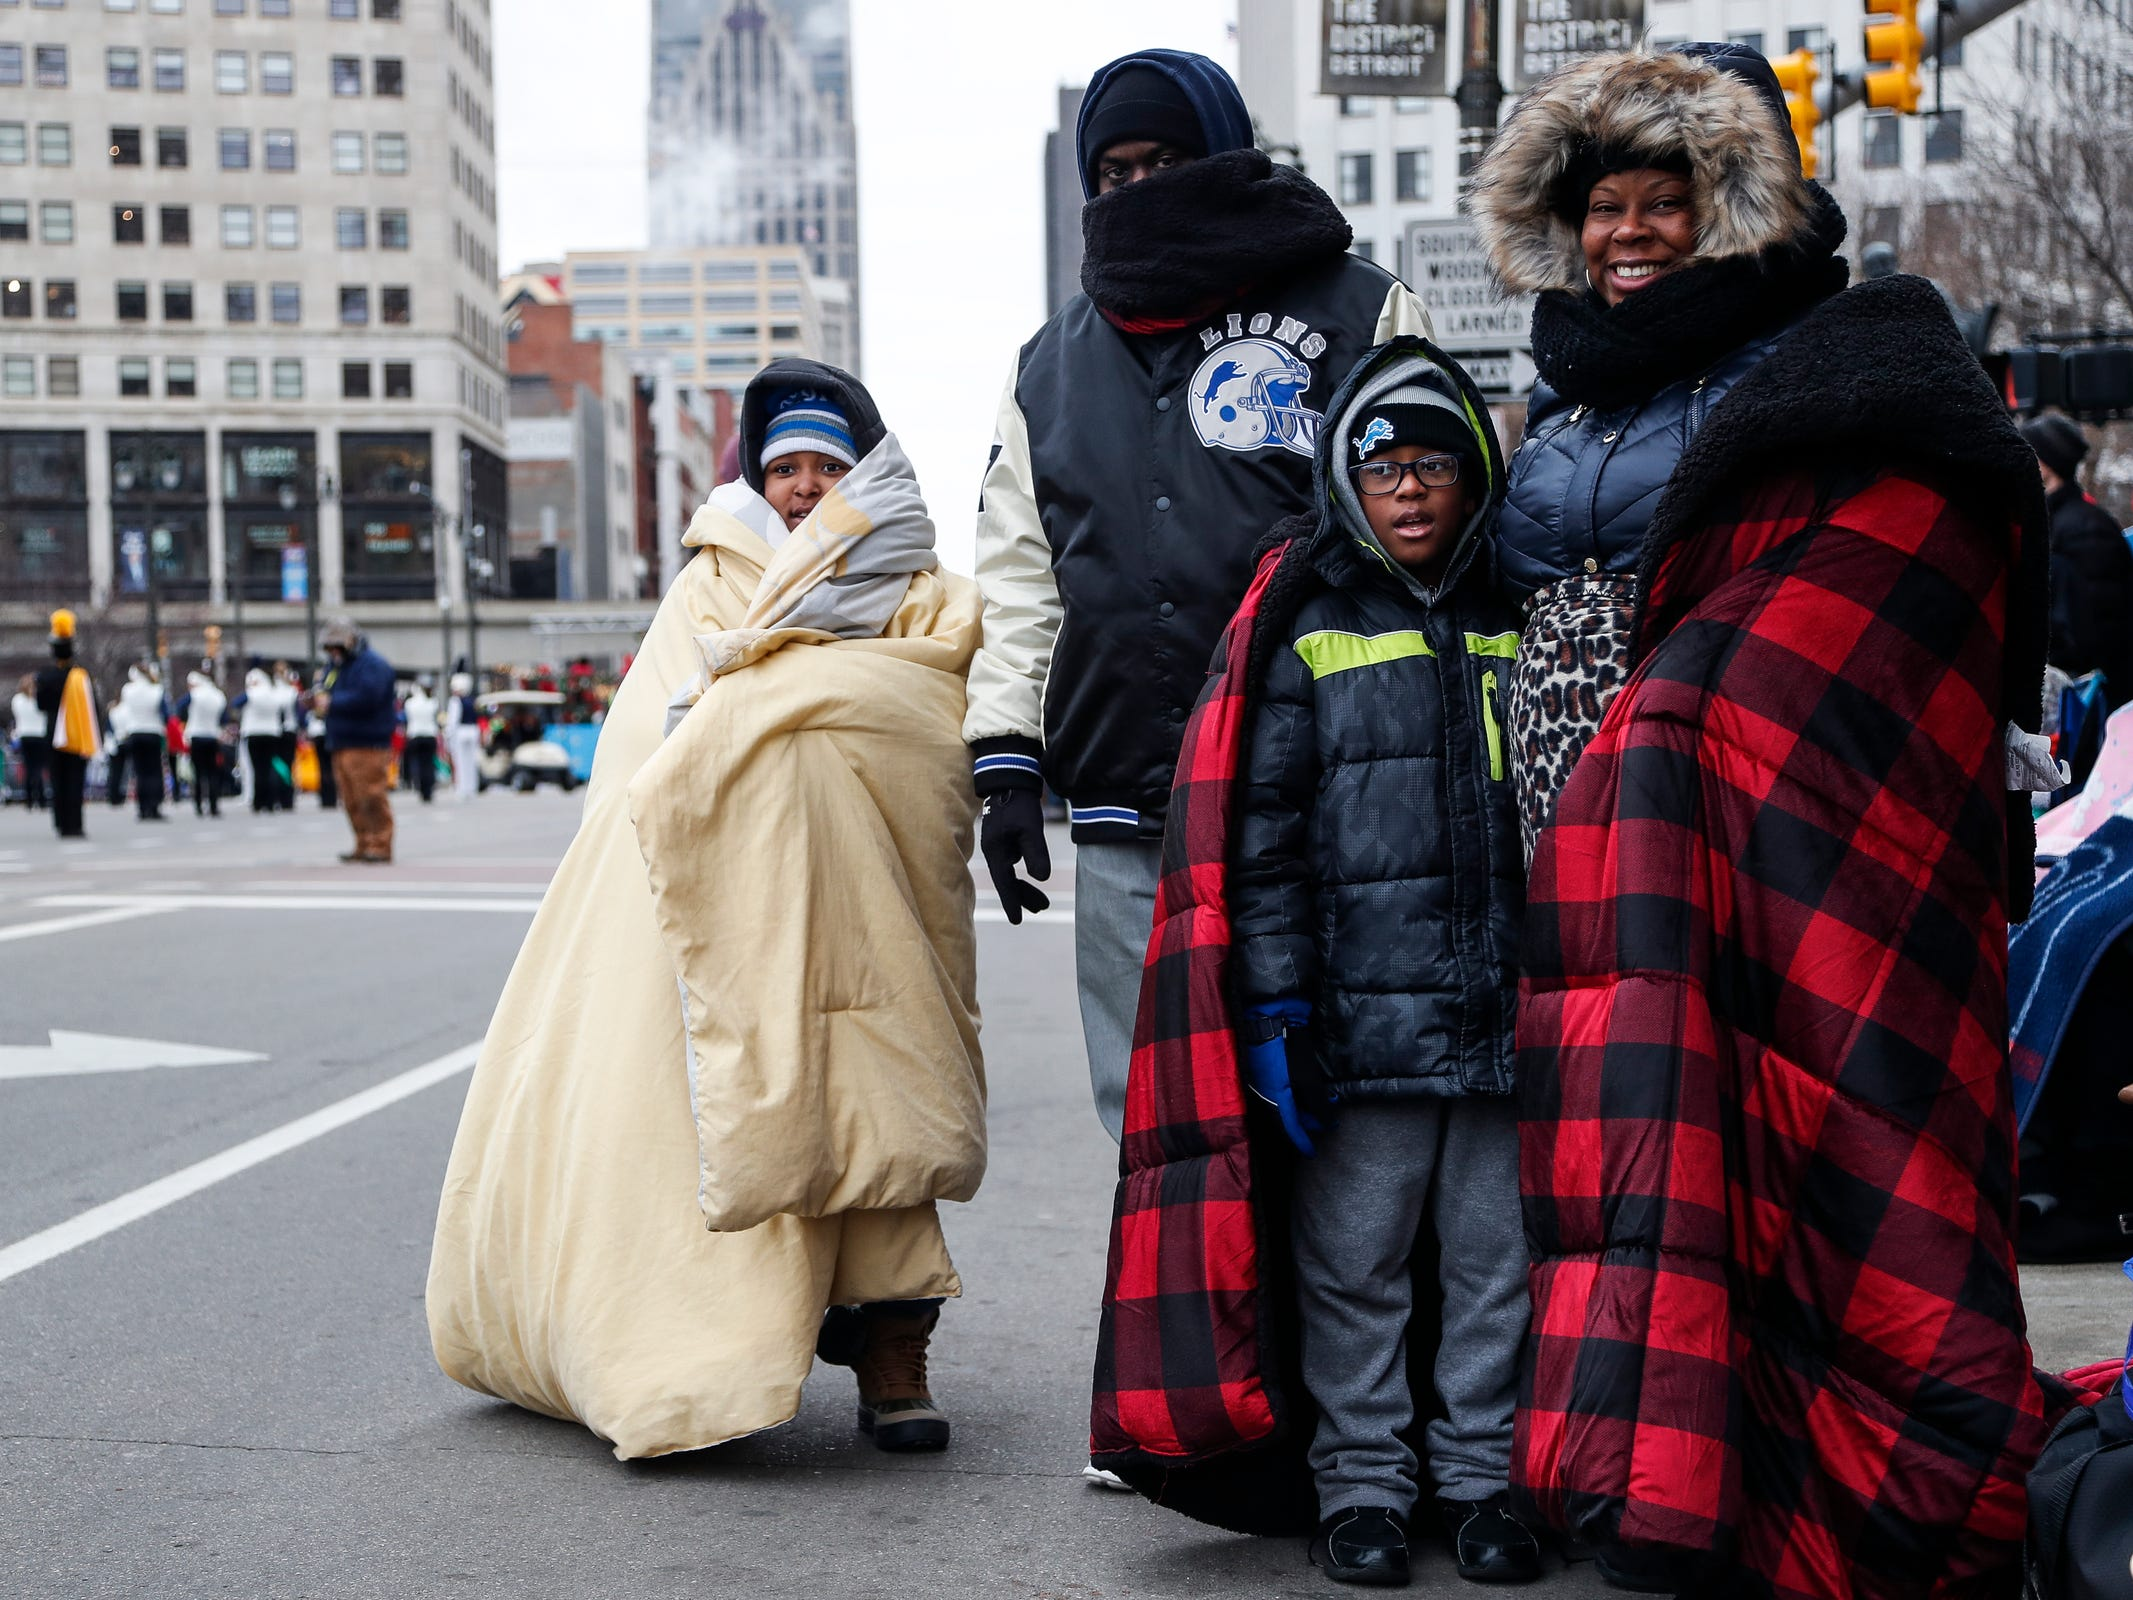 From left, Deraj Tigner, 7, Victor Griffin, Kevin Dean, 7, and his mother Arthelrus Day, try to stay warm on Woodward Avenue during the 92nd America's Thanksgiving Day Parade in Detroit, Thursday, Nov. 22, 2018.